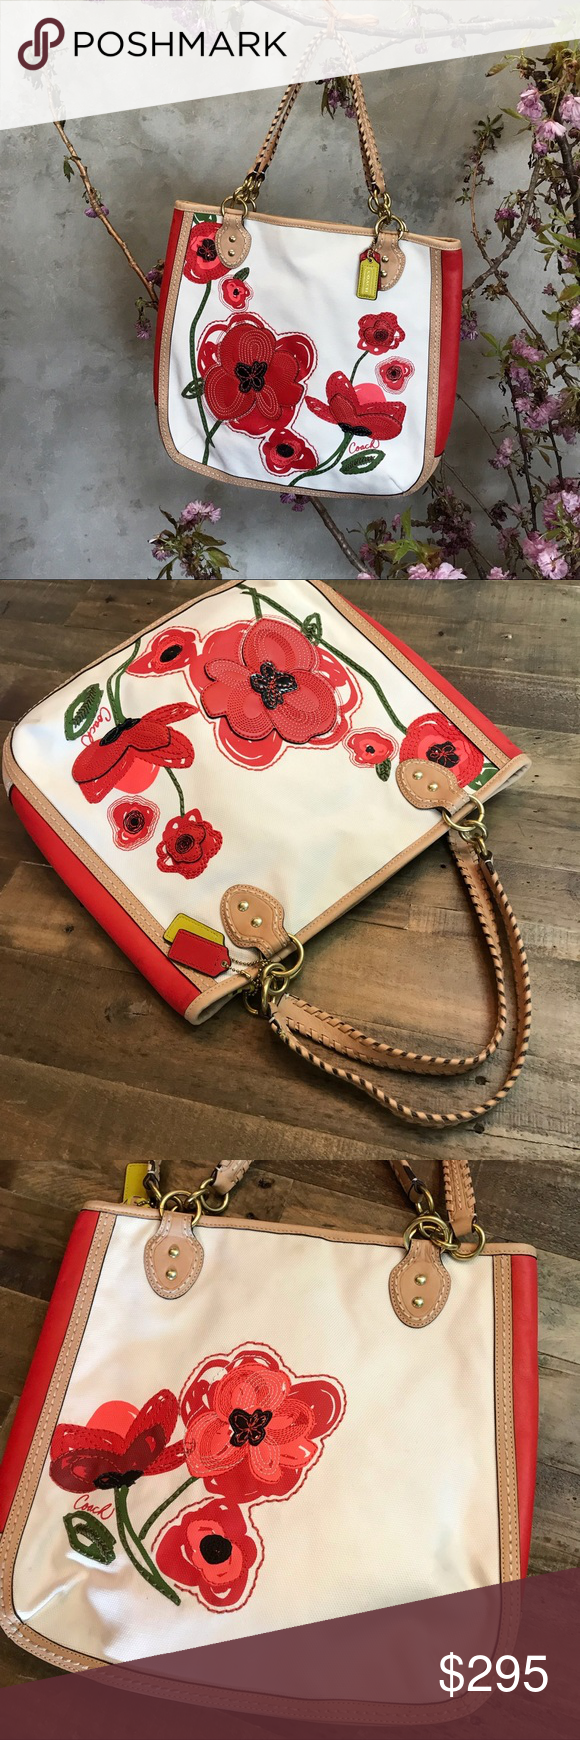 Spotted while shopping on Poshmark  Coach poppy limited edition red appliqué  tote bag!  poshmark  fashion  shopping  style  Coach  Handbags 5b083bfb56